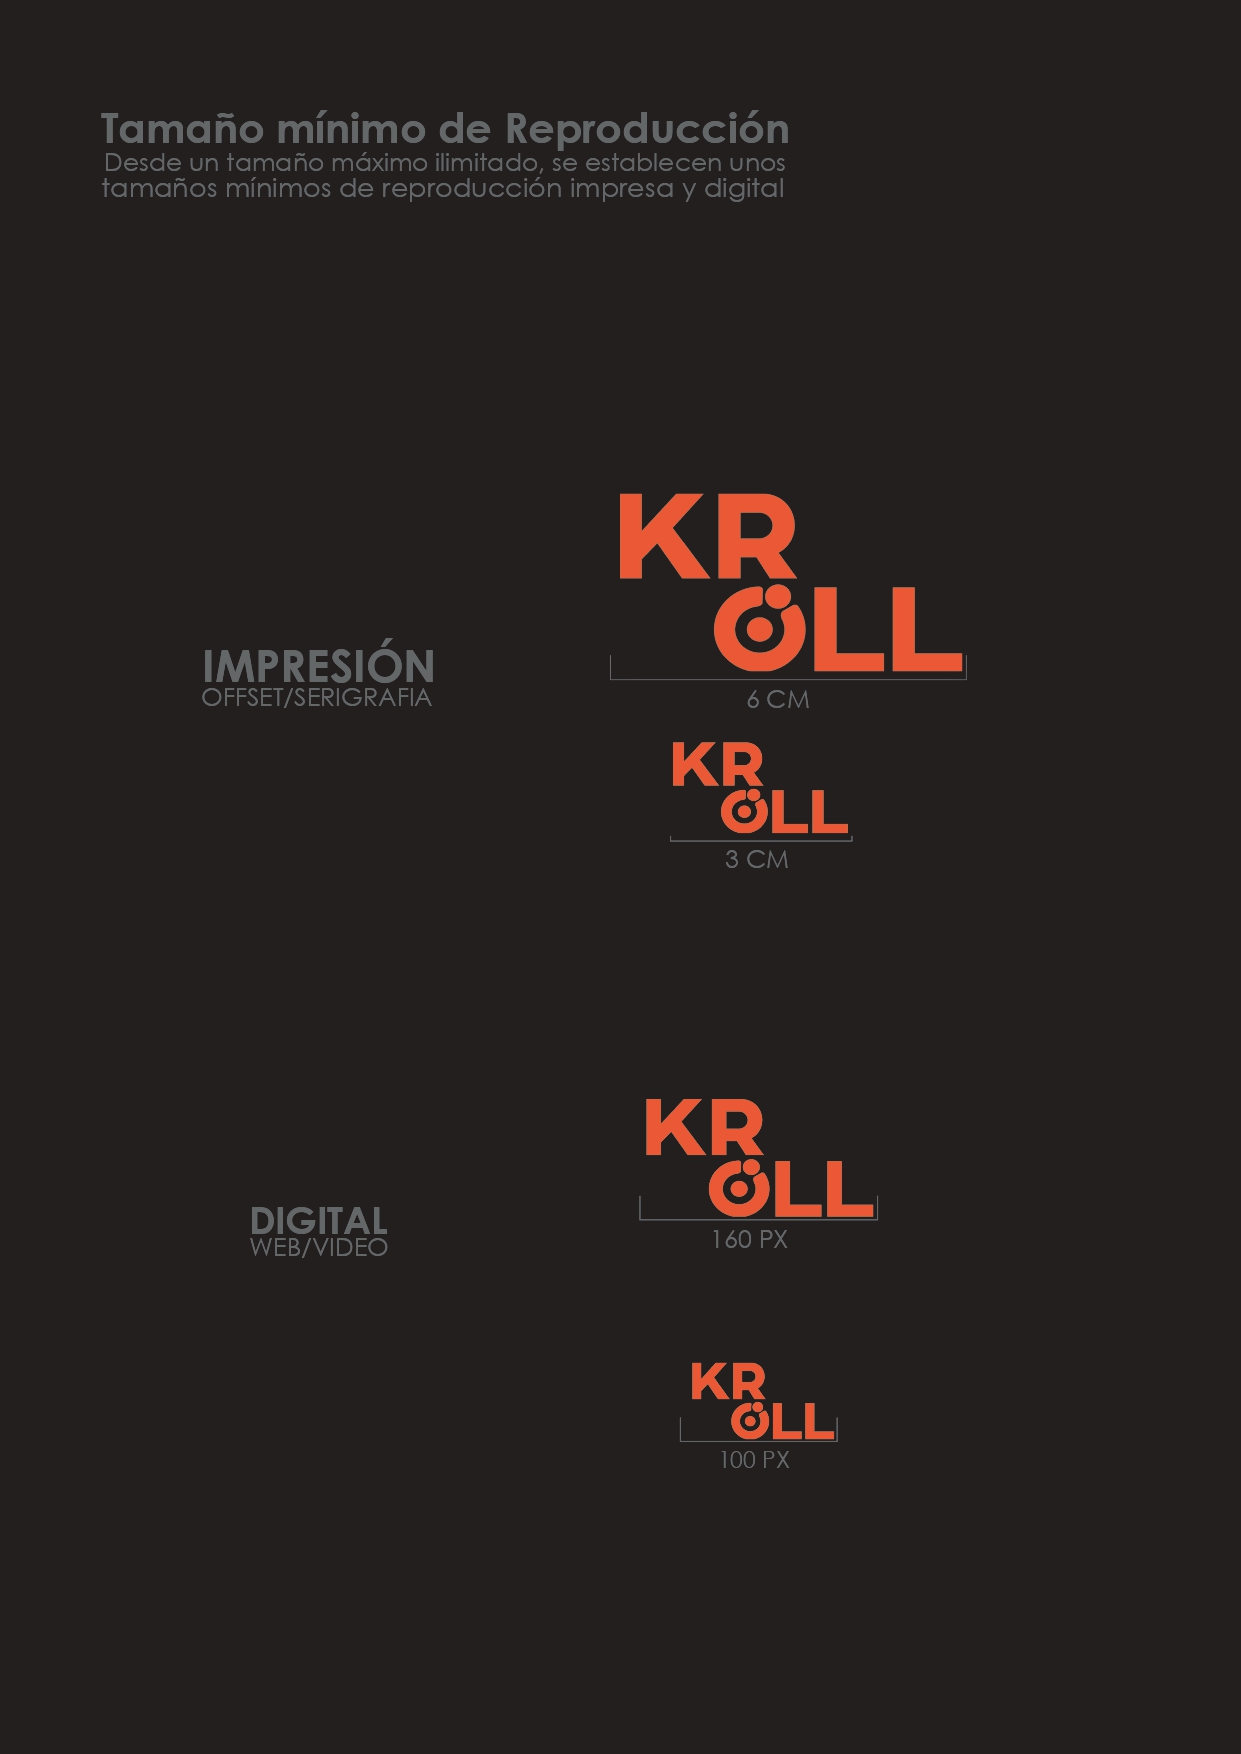 Manual Kroll1 (1)_pages-to-jpg-0012